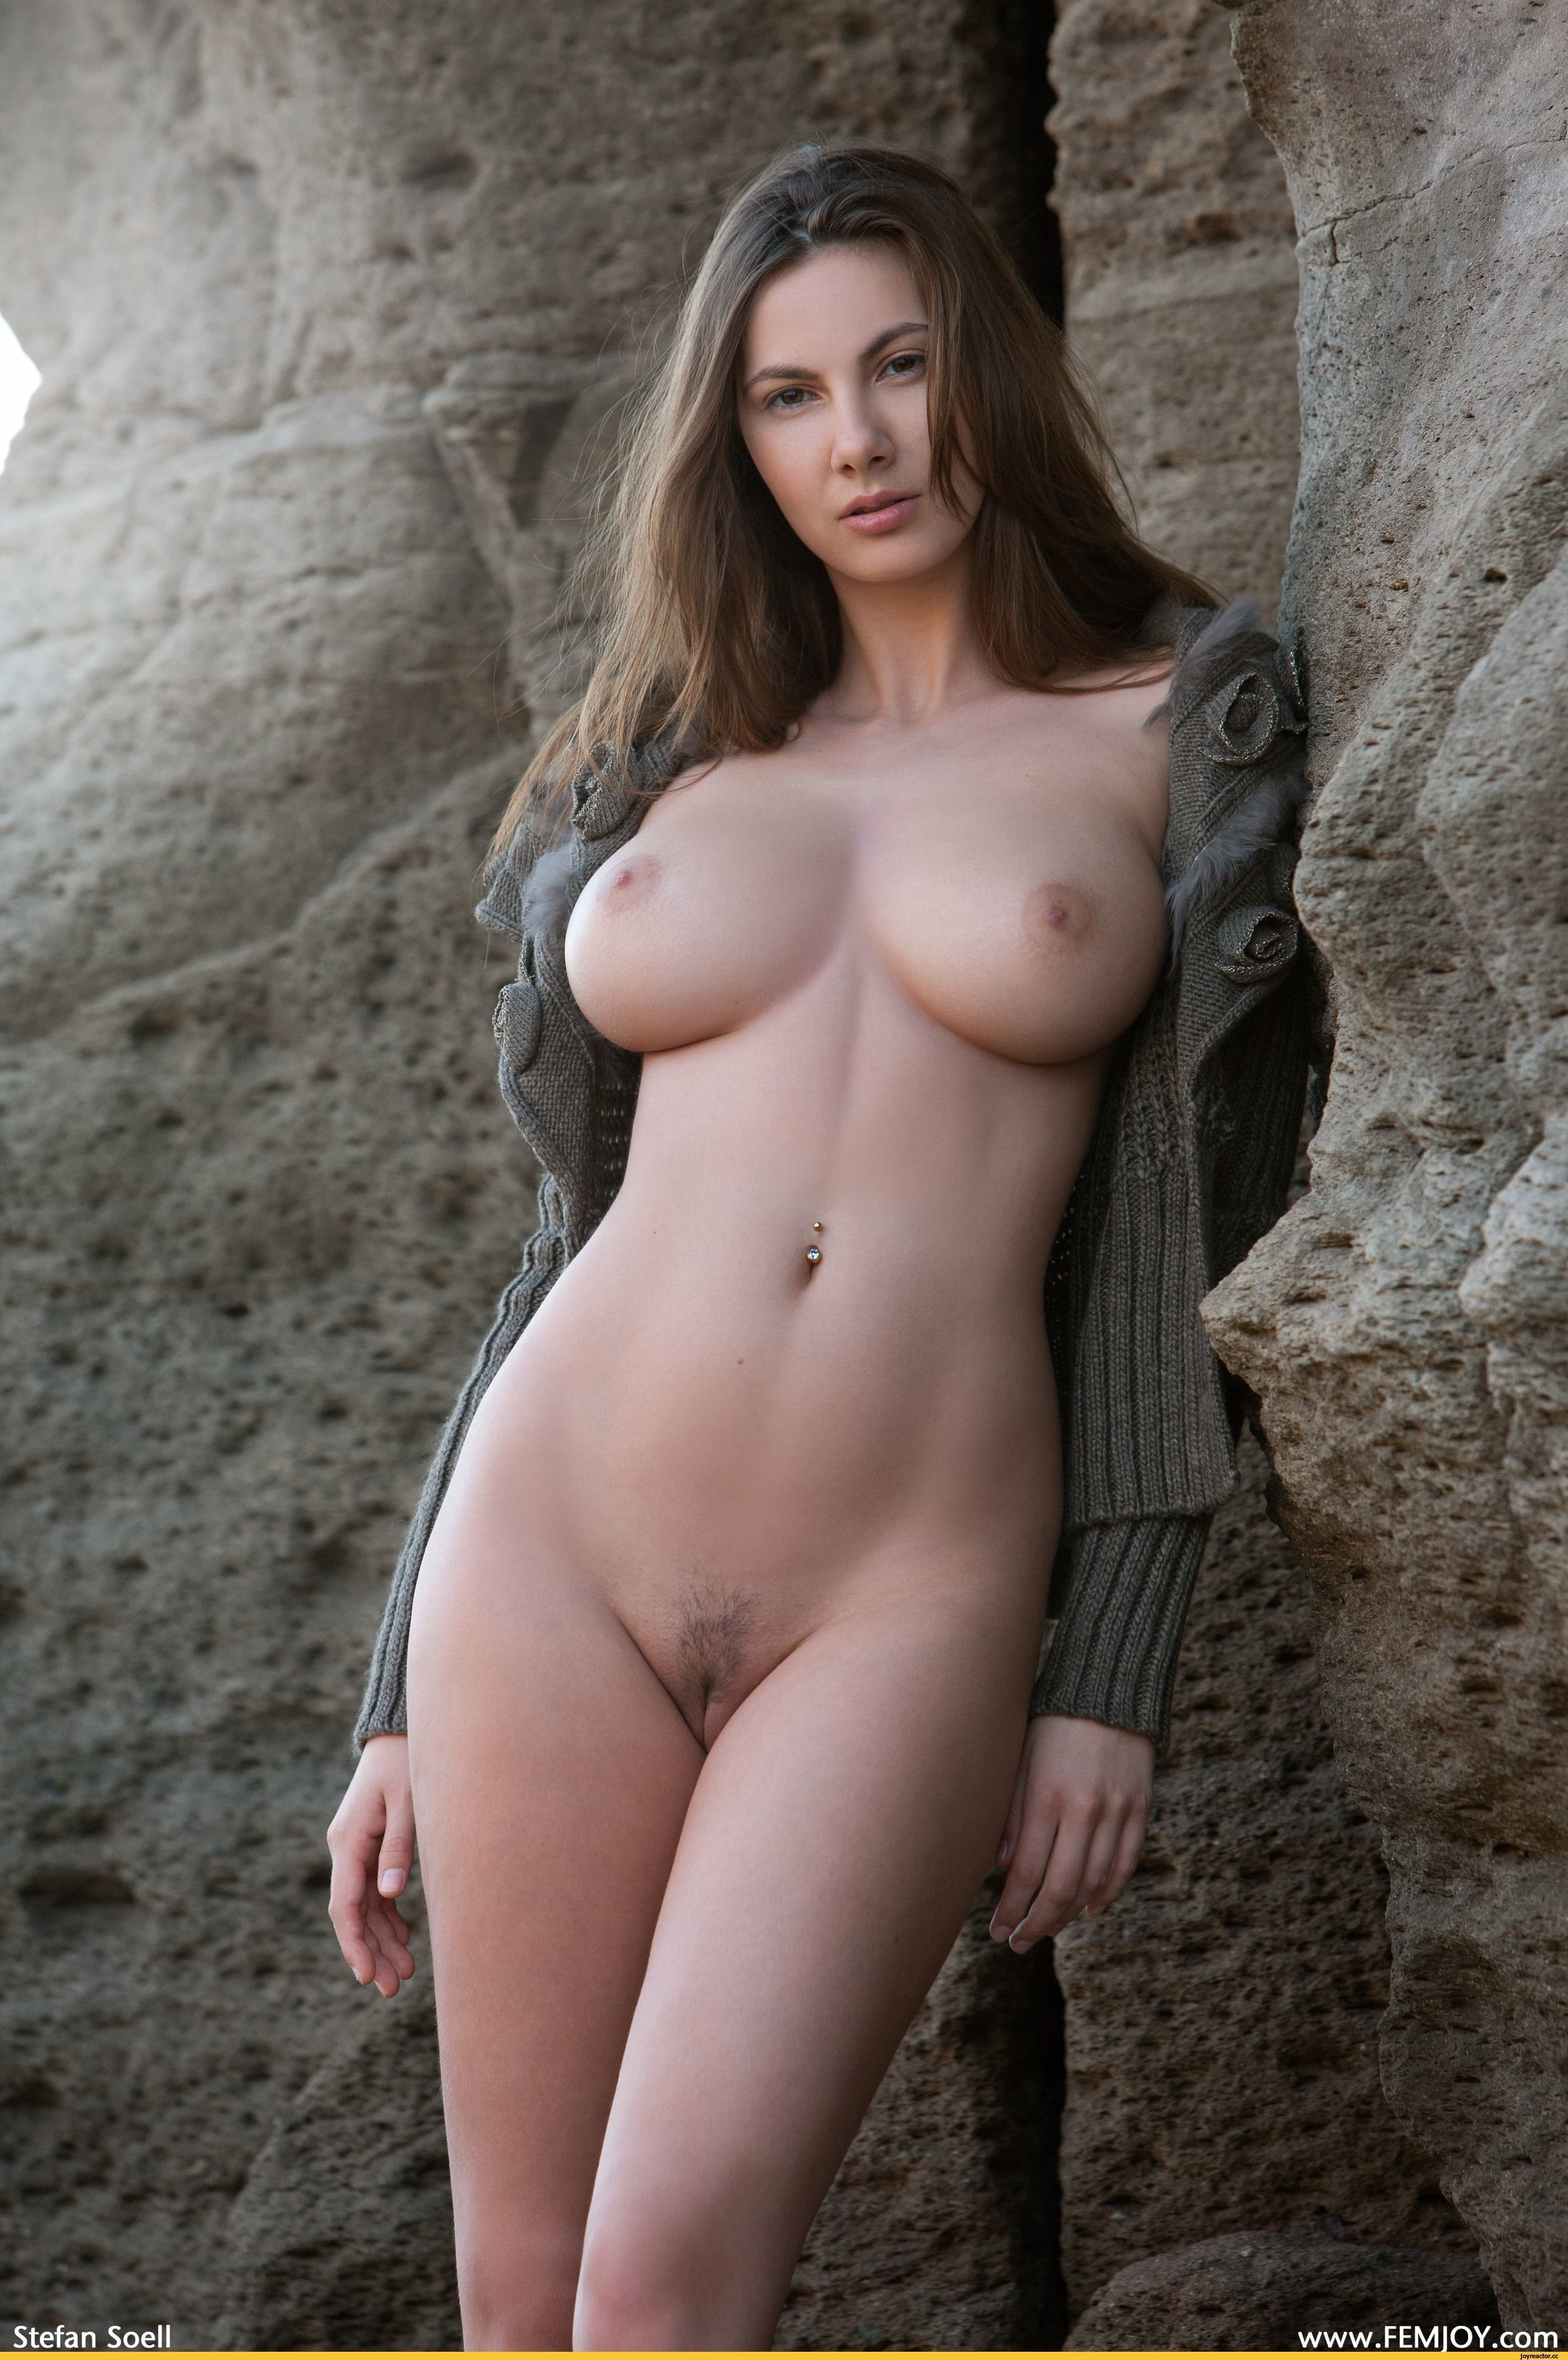 Naked women with beautiful bodies